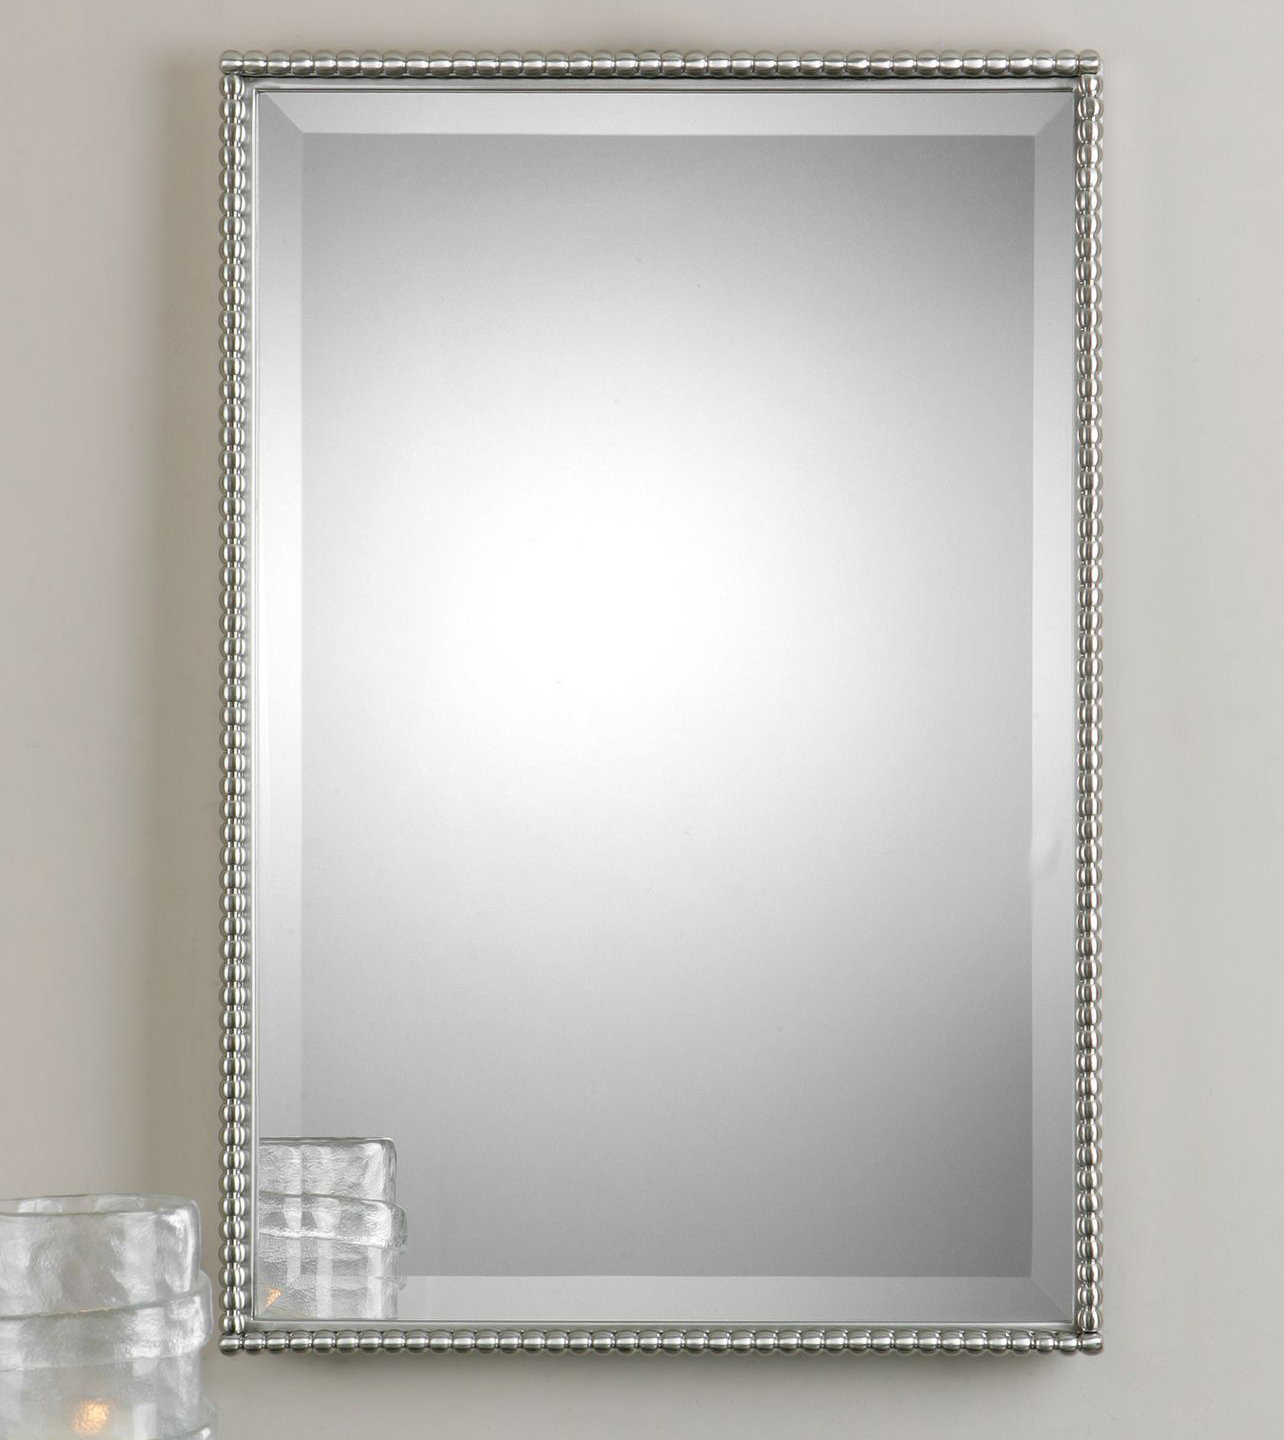 Glen View Wall Mirror With Regard To Epinal Shabby Elegance Wall Mirrors (View 14 of 30)